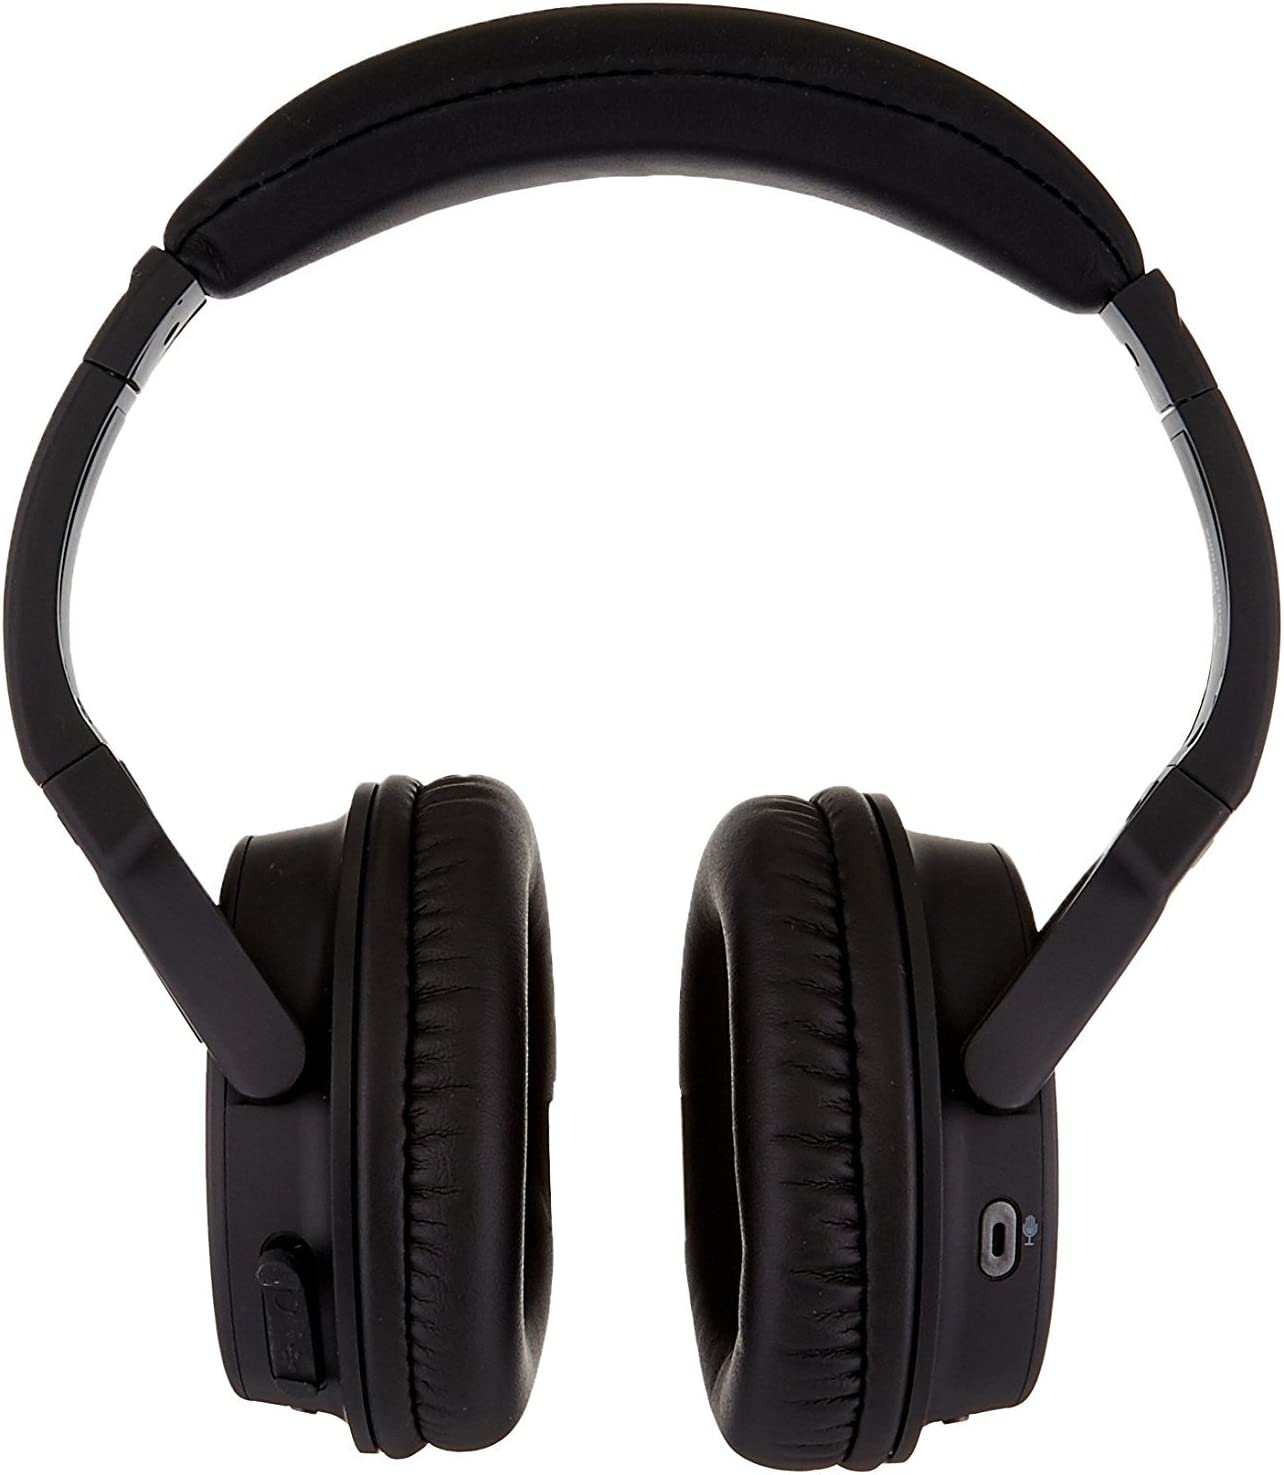 Black A1 Bluetooth 4.1 Headphones with Built-in Mic and 12 Hour Battery